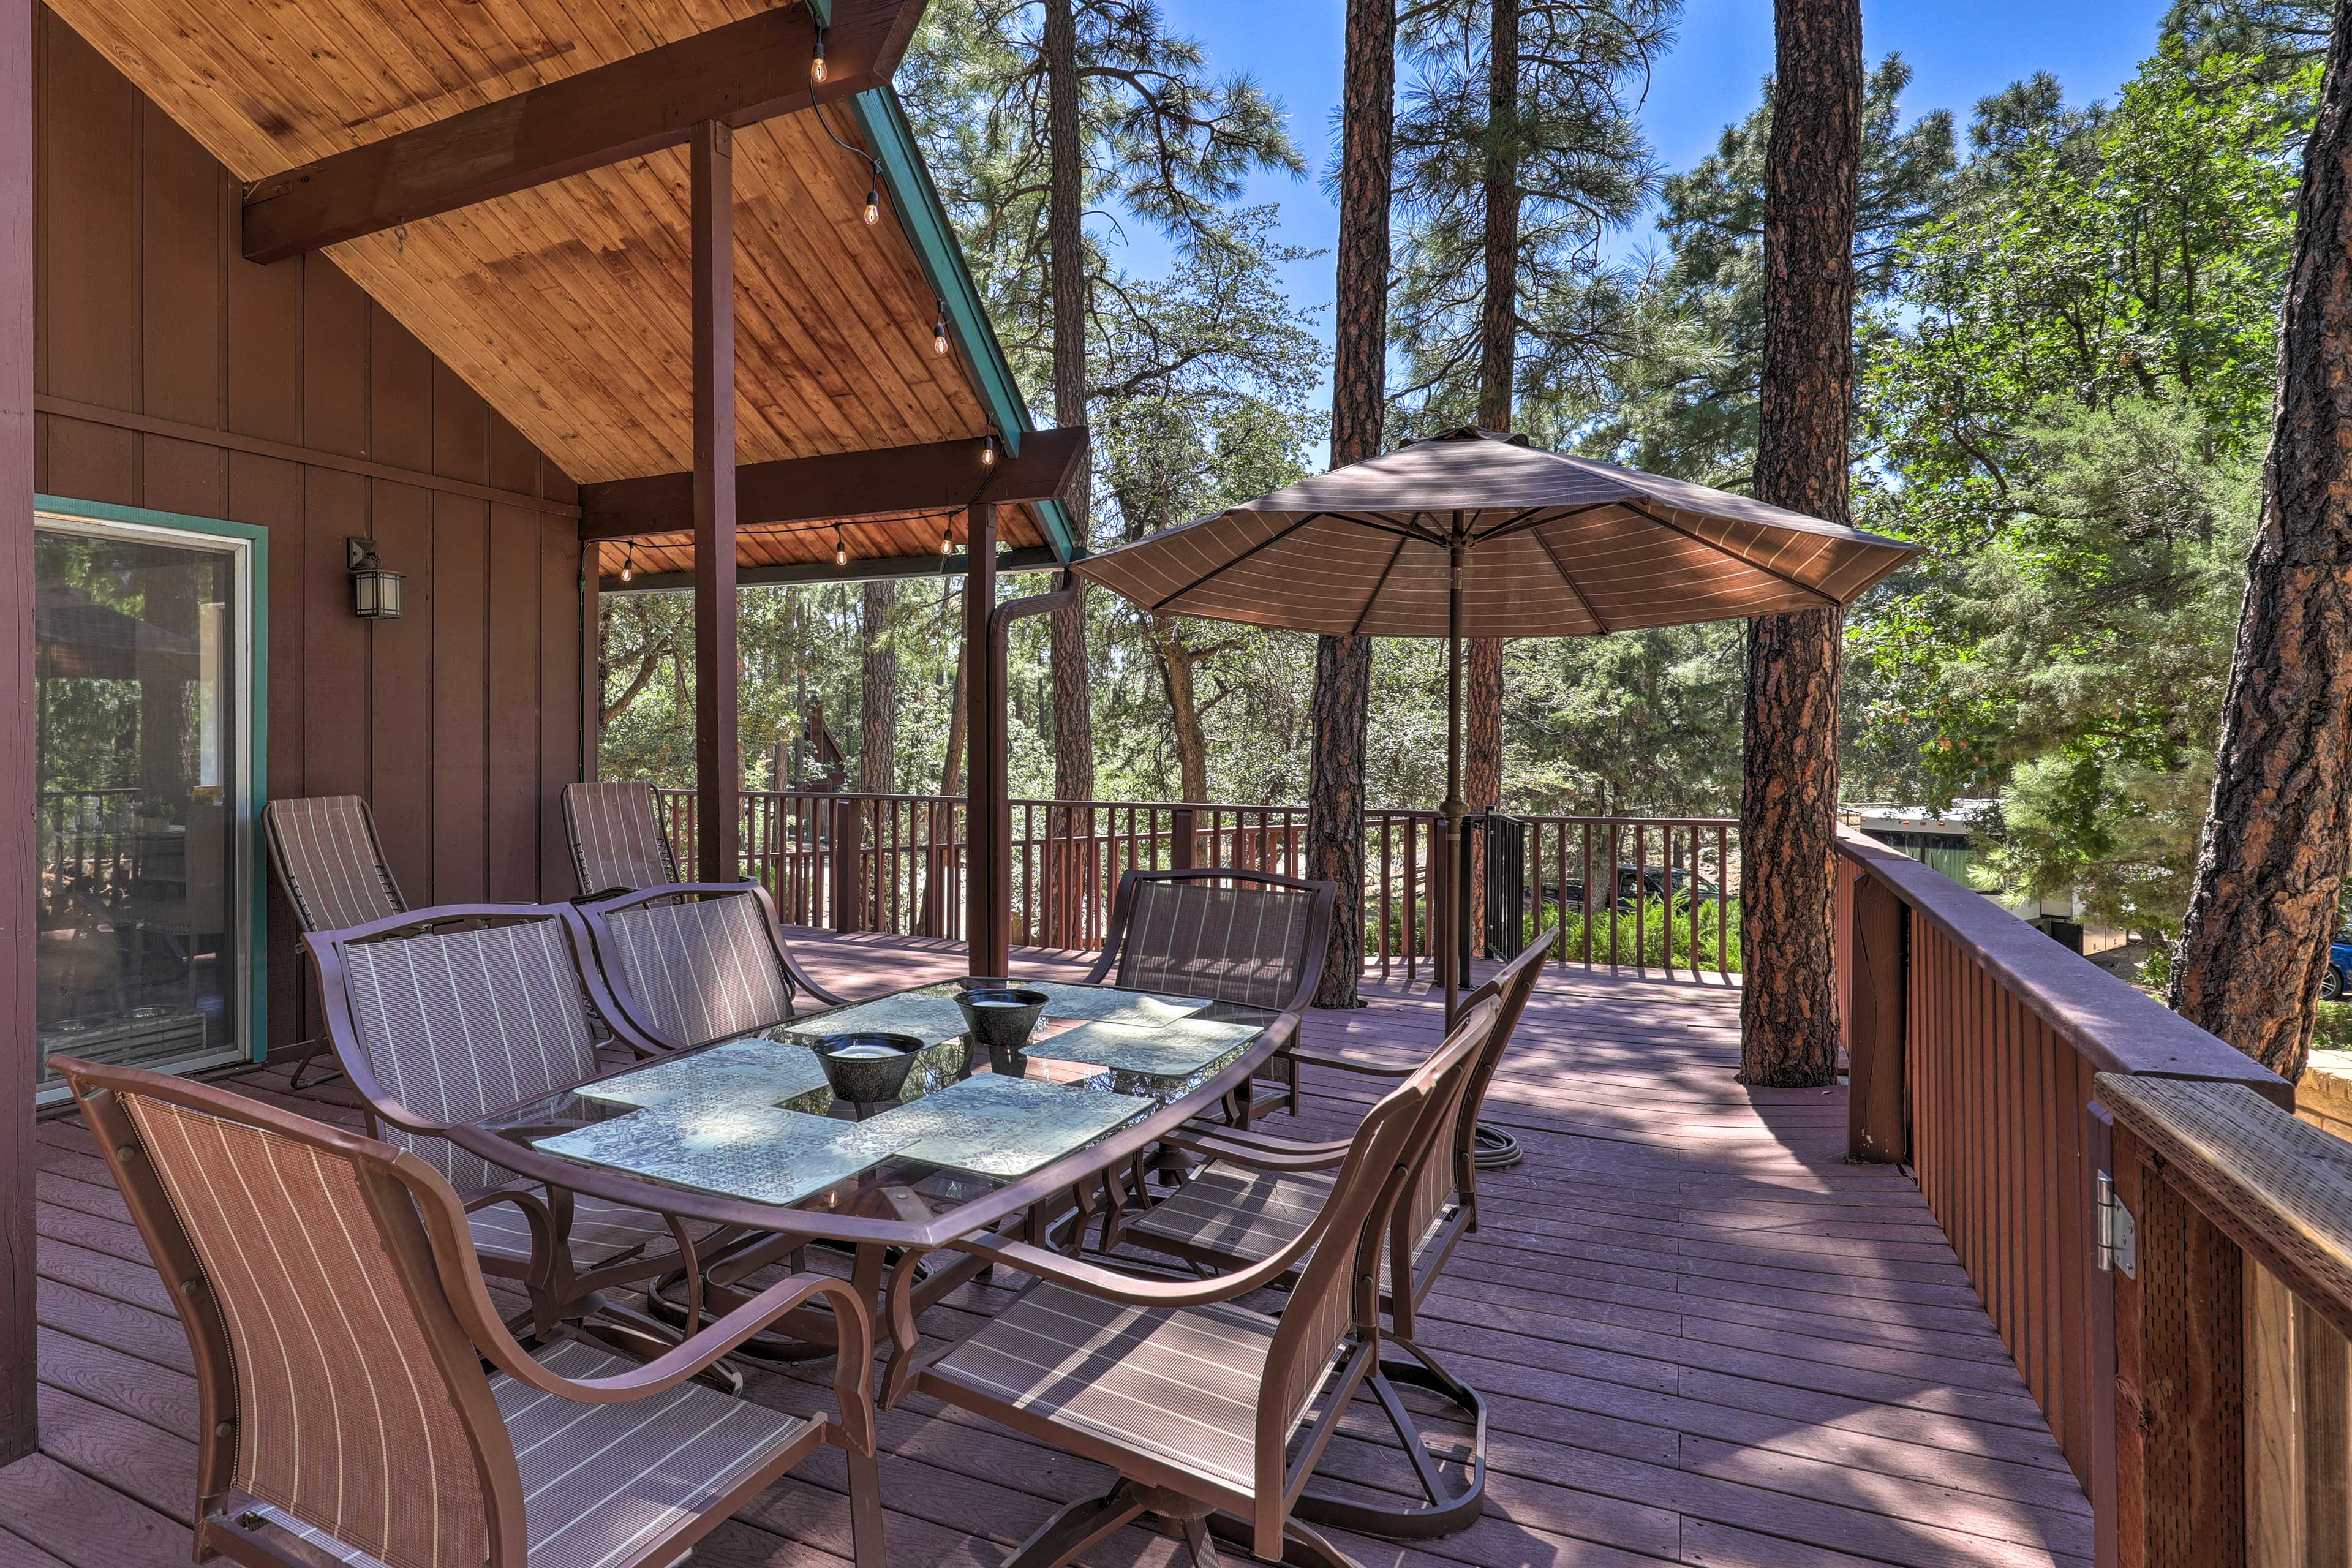 The vacation rental sleeps 6 and offers an amazing outdoor space.